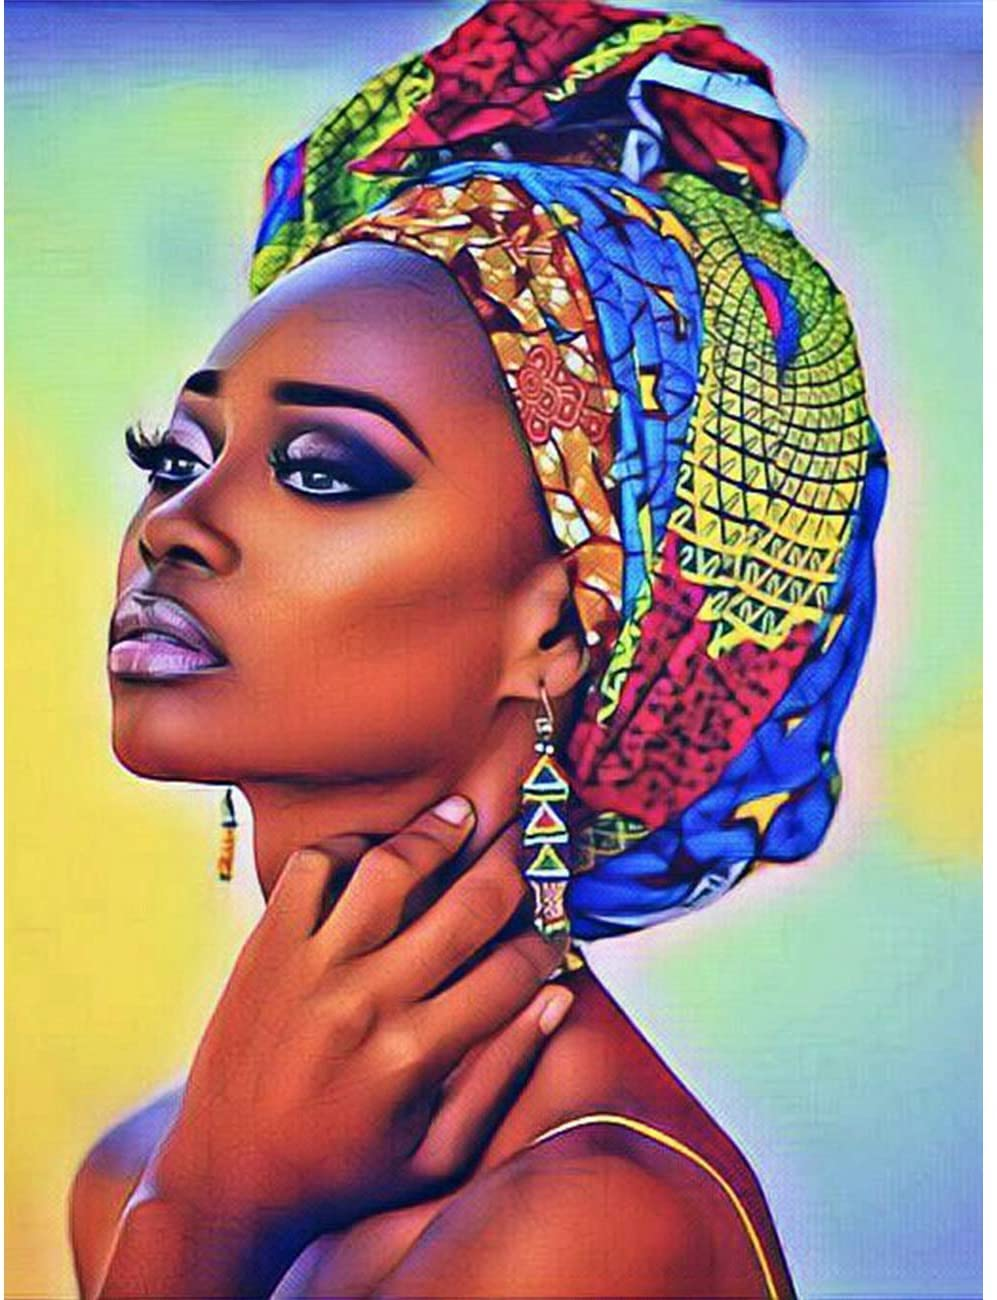 5D Diamond Painting Purple African Woman Full Drill by Number Kits, SKRYUIE DIY Rhinestone Pasted Paint with Diamond Set Arts Craft Decorations (12x16inch)